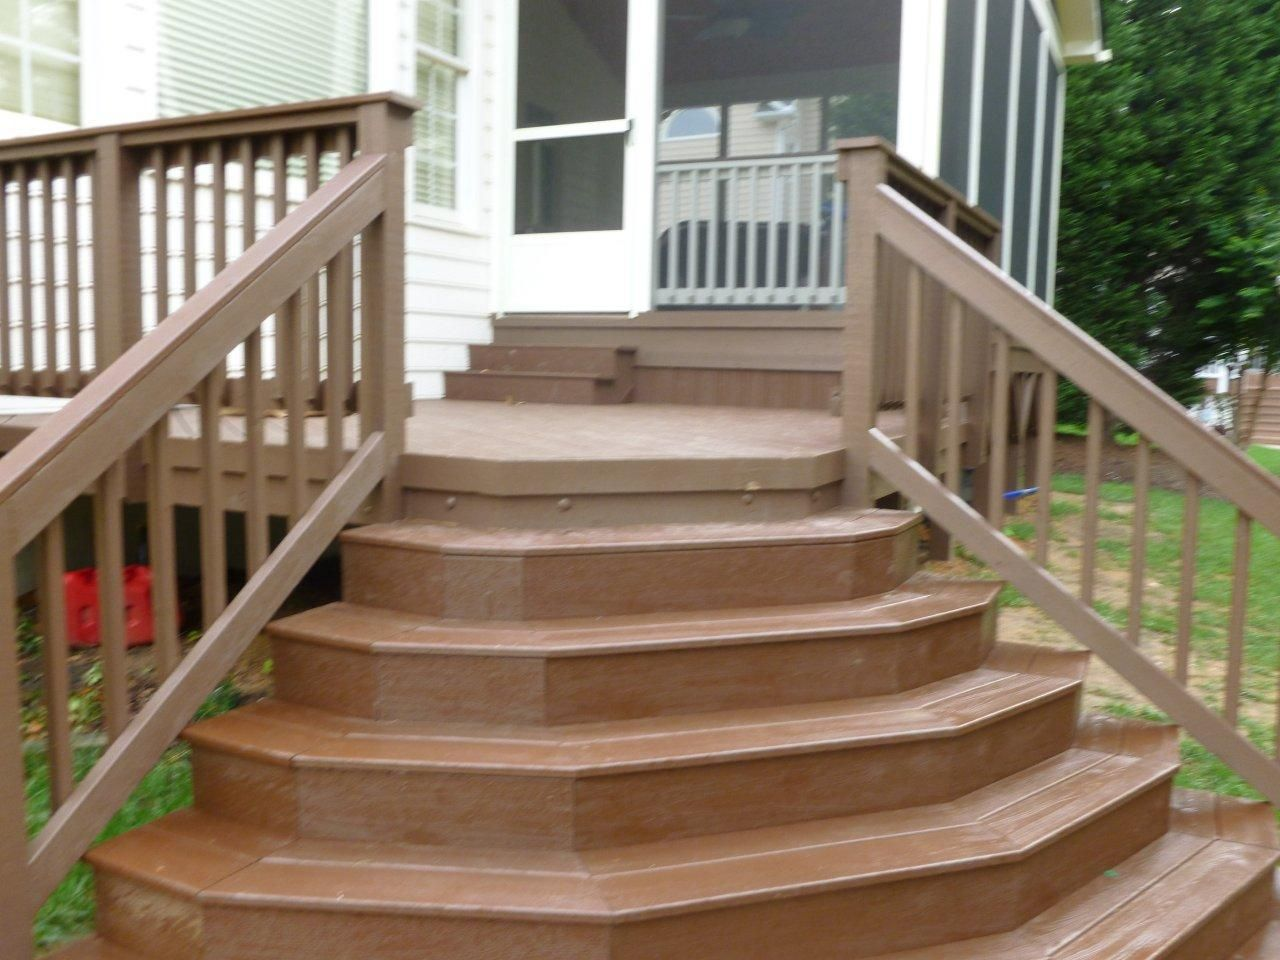 pics of decks build a deck with charlotte deck design company archadeck of charlotte - Deck Stairs Design Ideas